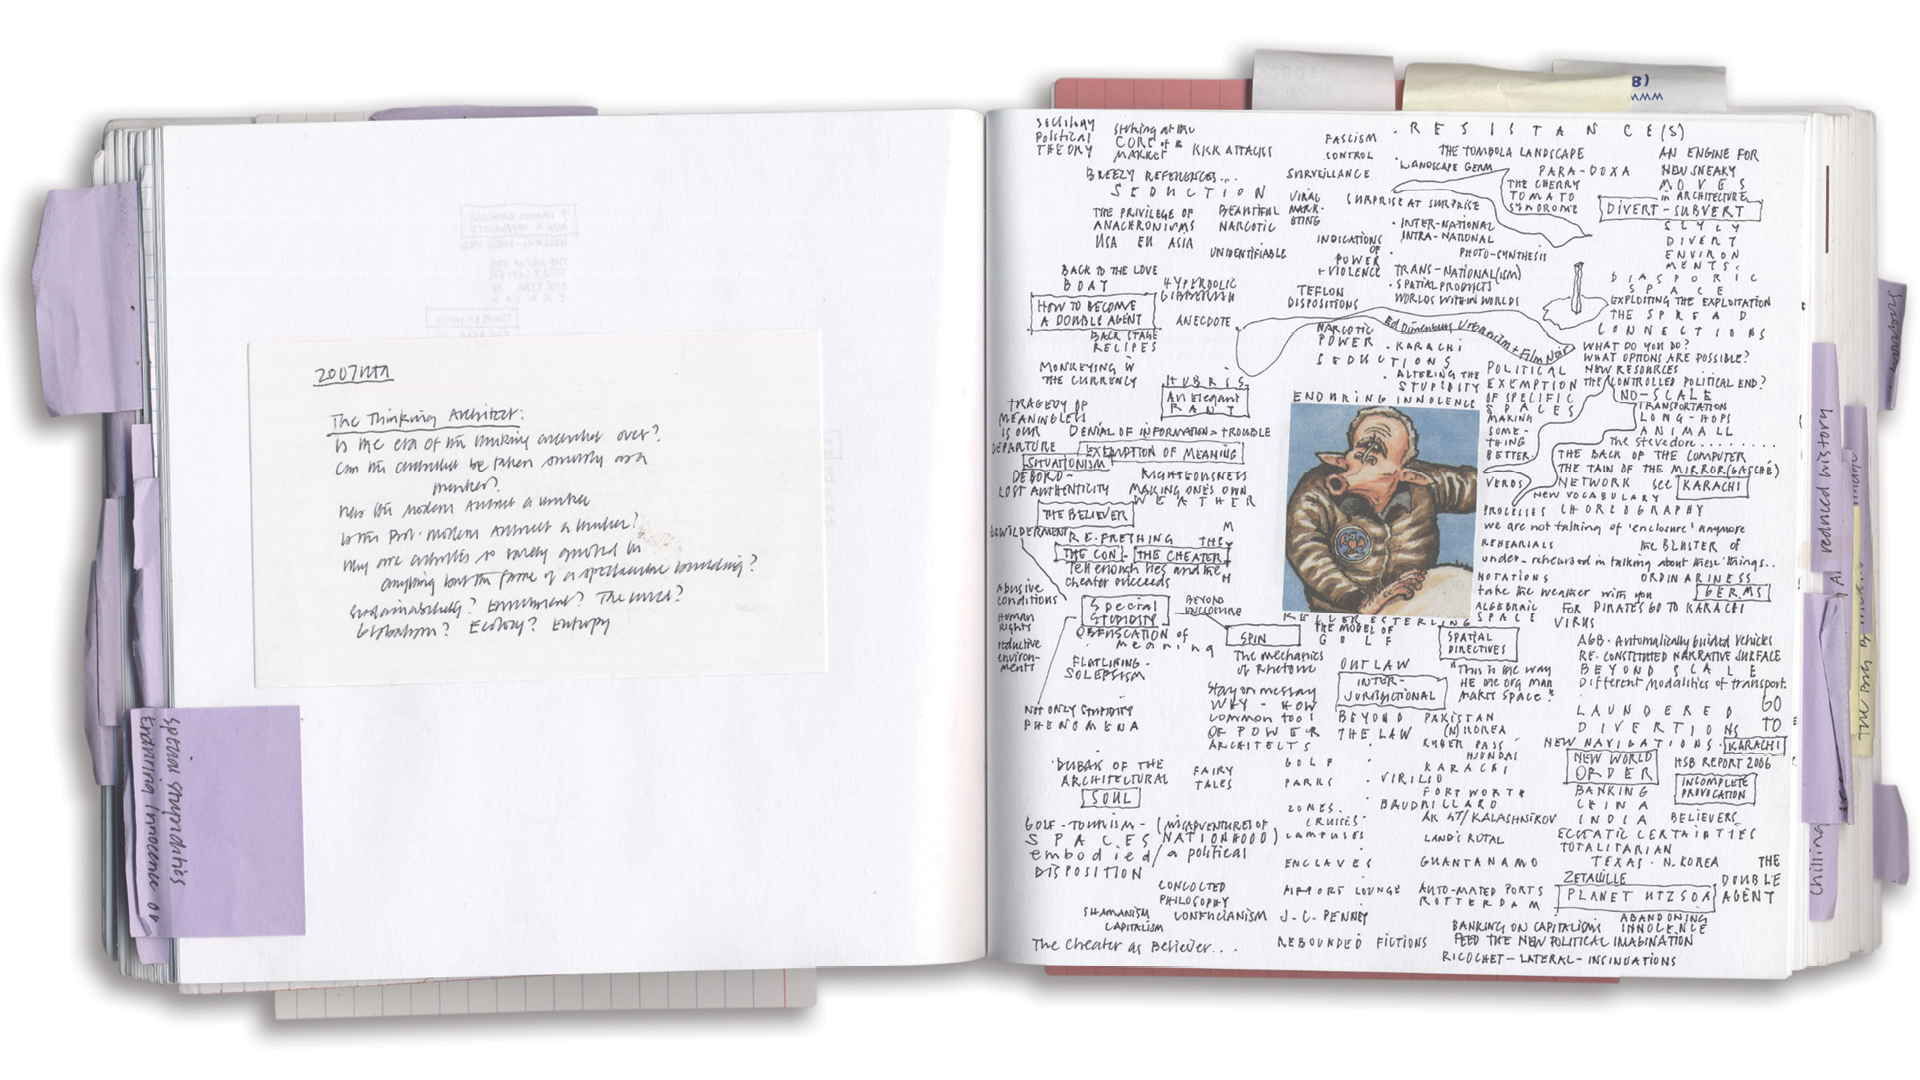 Pages from the Sketchbook – Roger Connah